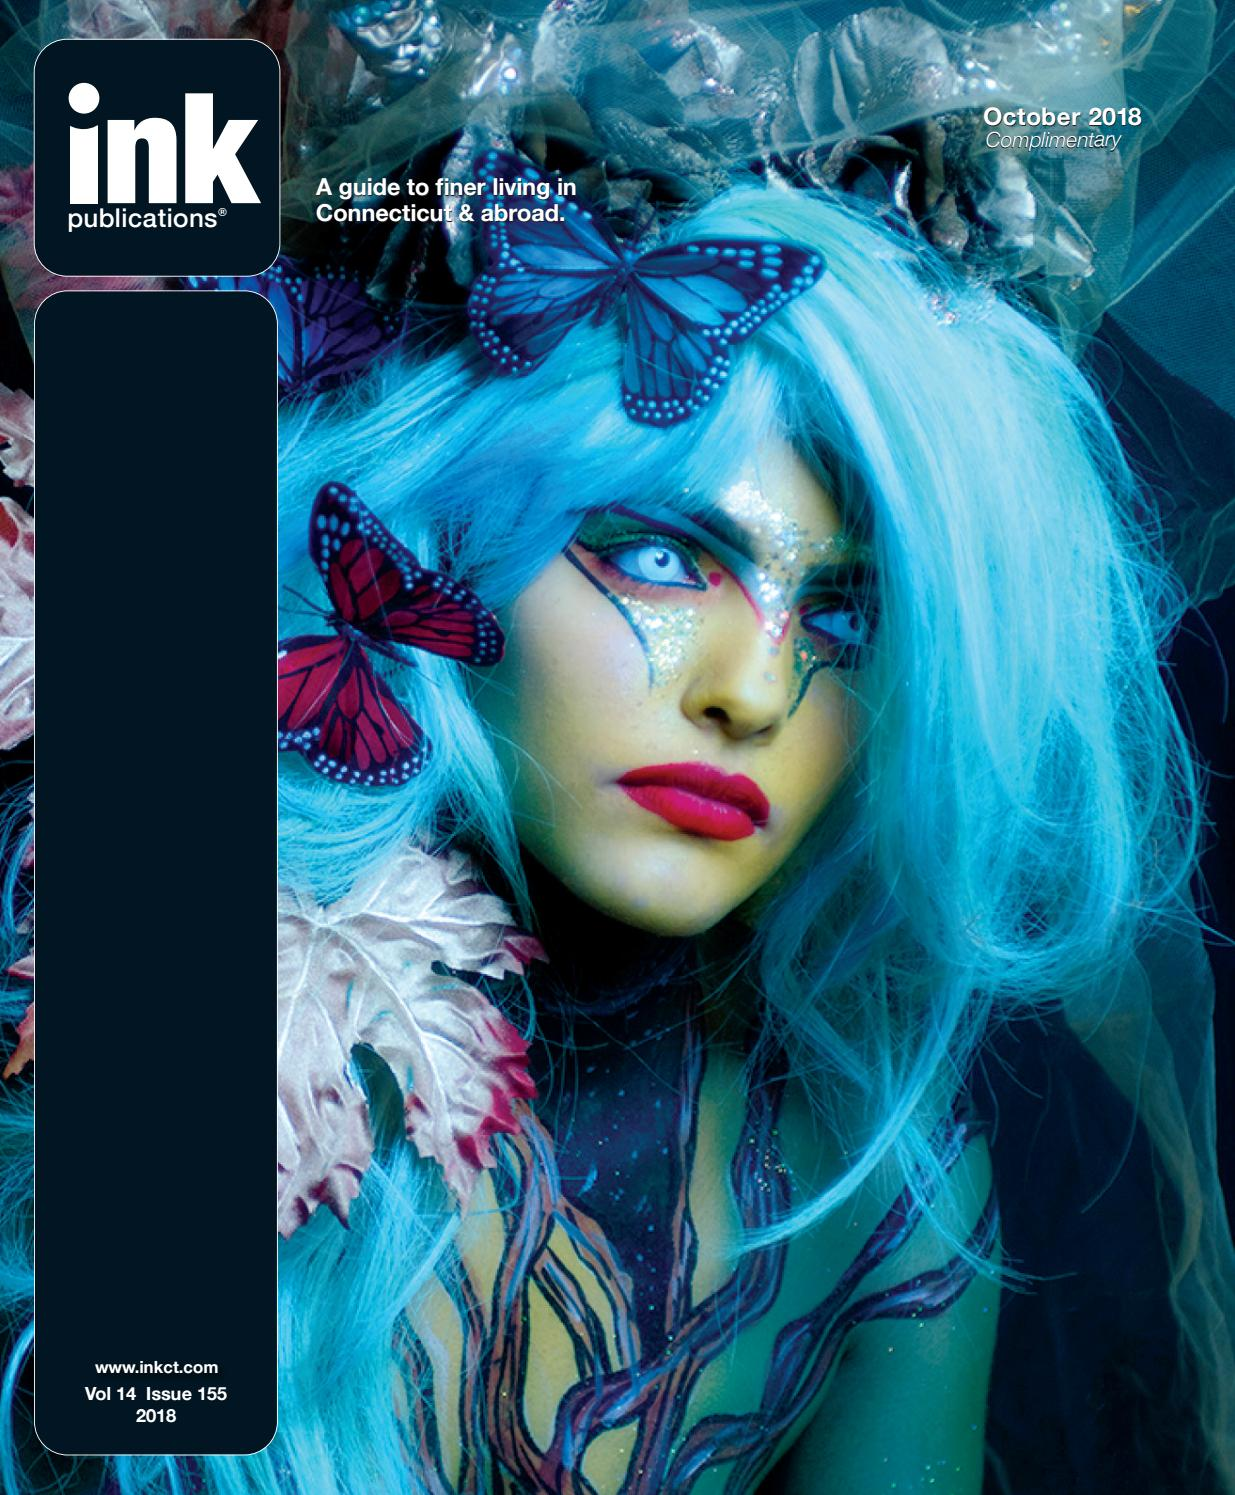 October 2018 Ink Publications by Ink Publications - issuu